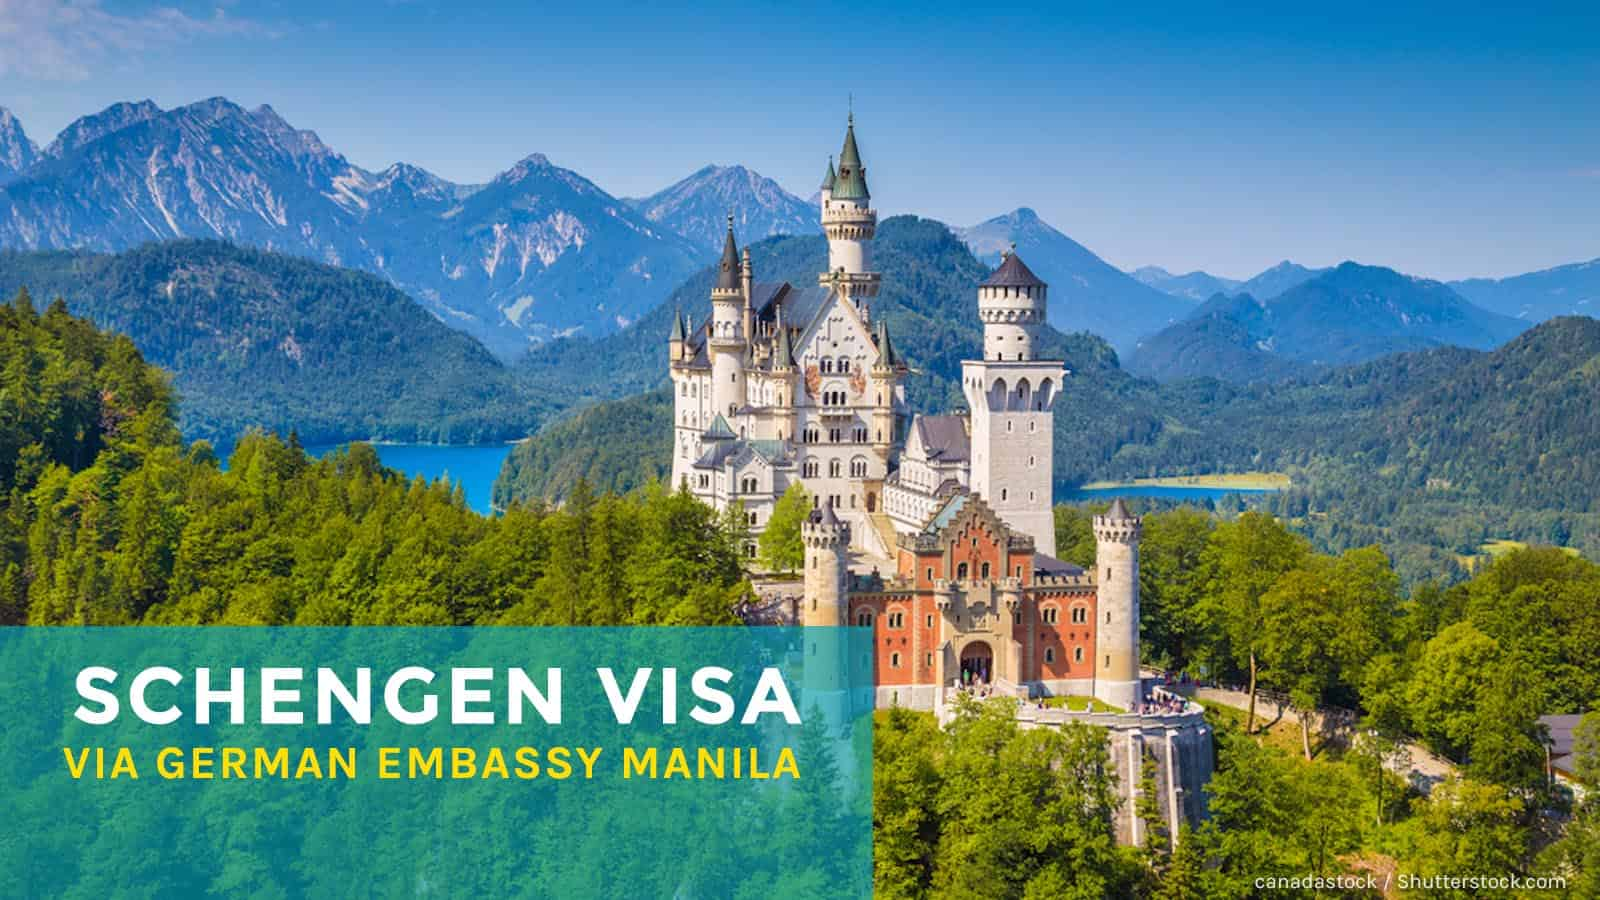 format of invitation letter for visgermany%0A SCHENGEN VISA via GERMAN EMBASSY  Requirements  u     How to Apply   The Poor  Traveler Blog